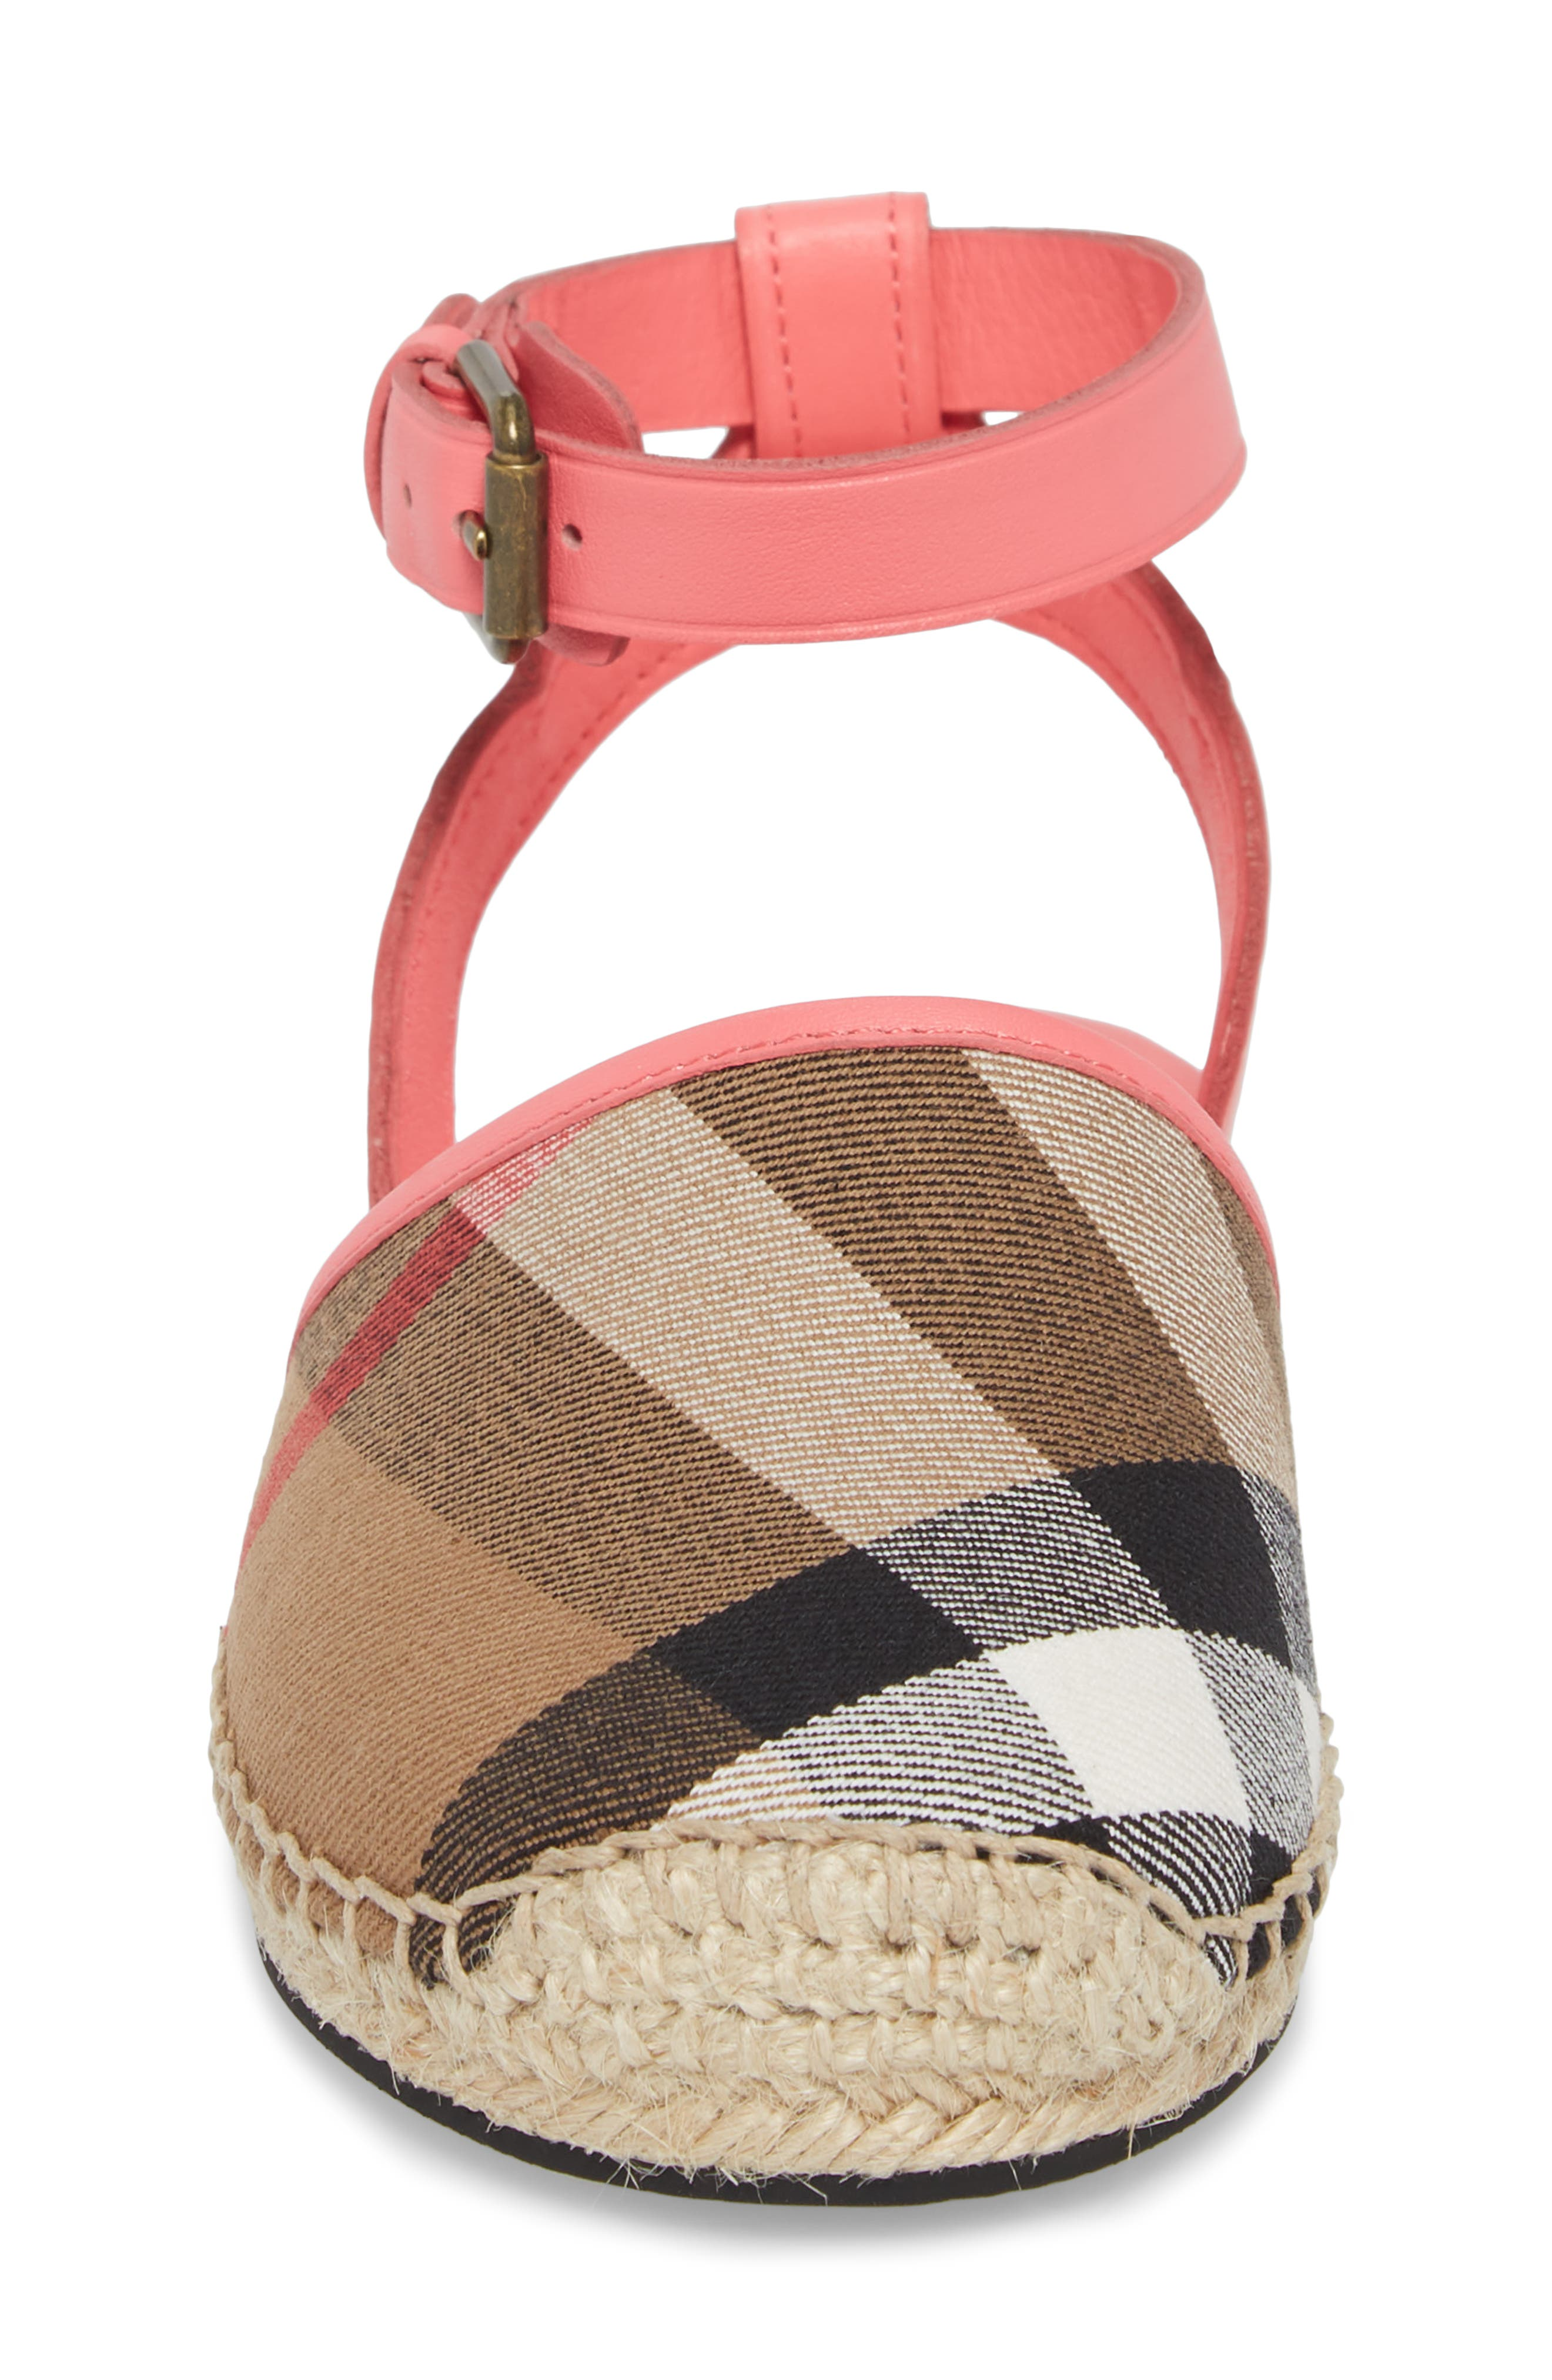 New Perth Espadrille Sandal,                             Alternate thumbnail 4, color,                             Bright Peony Rose